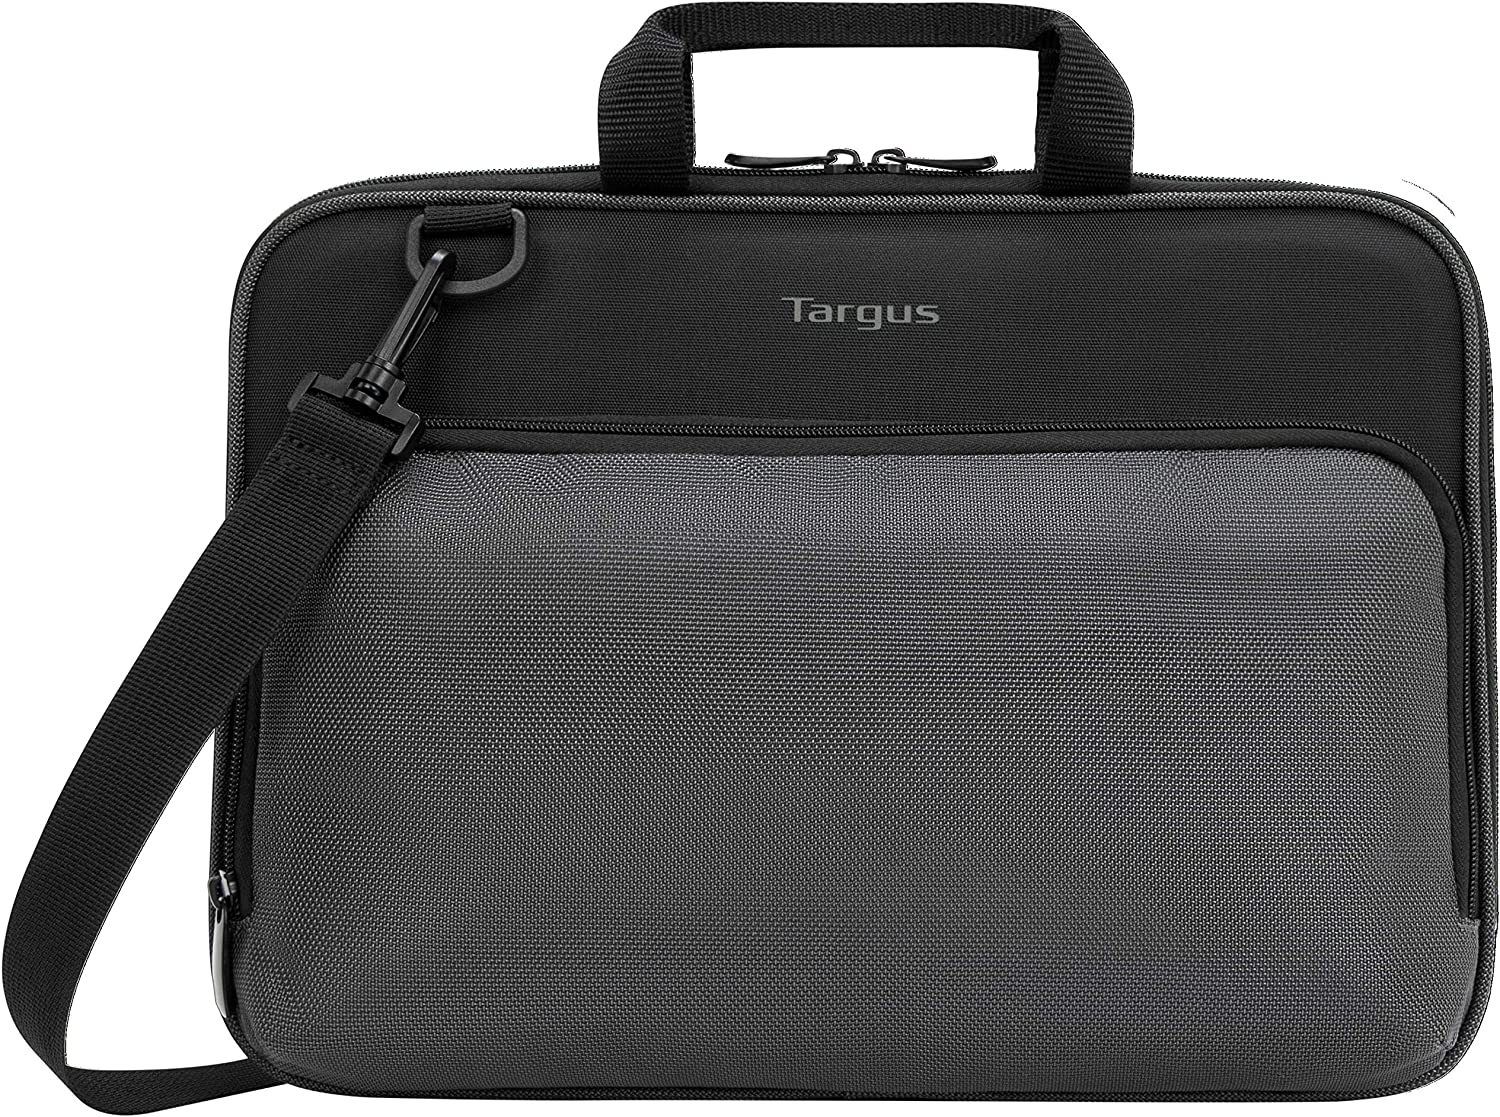 Targus Work-in Essentials Case with Touch Soft Slim Int おすすめ 1着でも送料無料 Profile